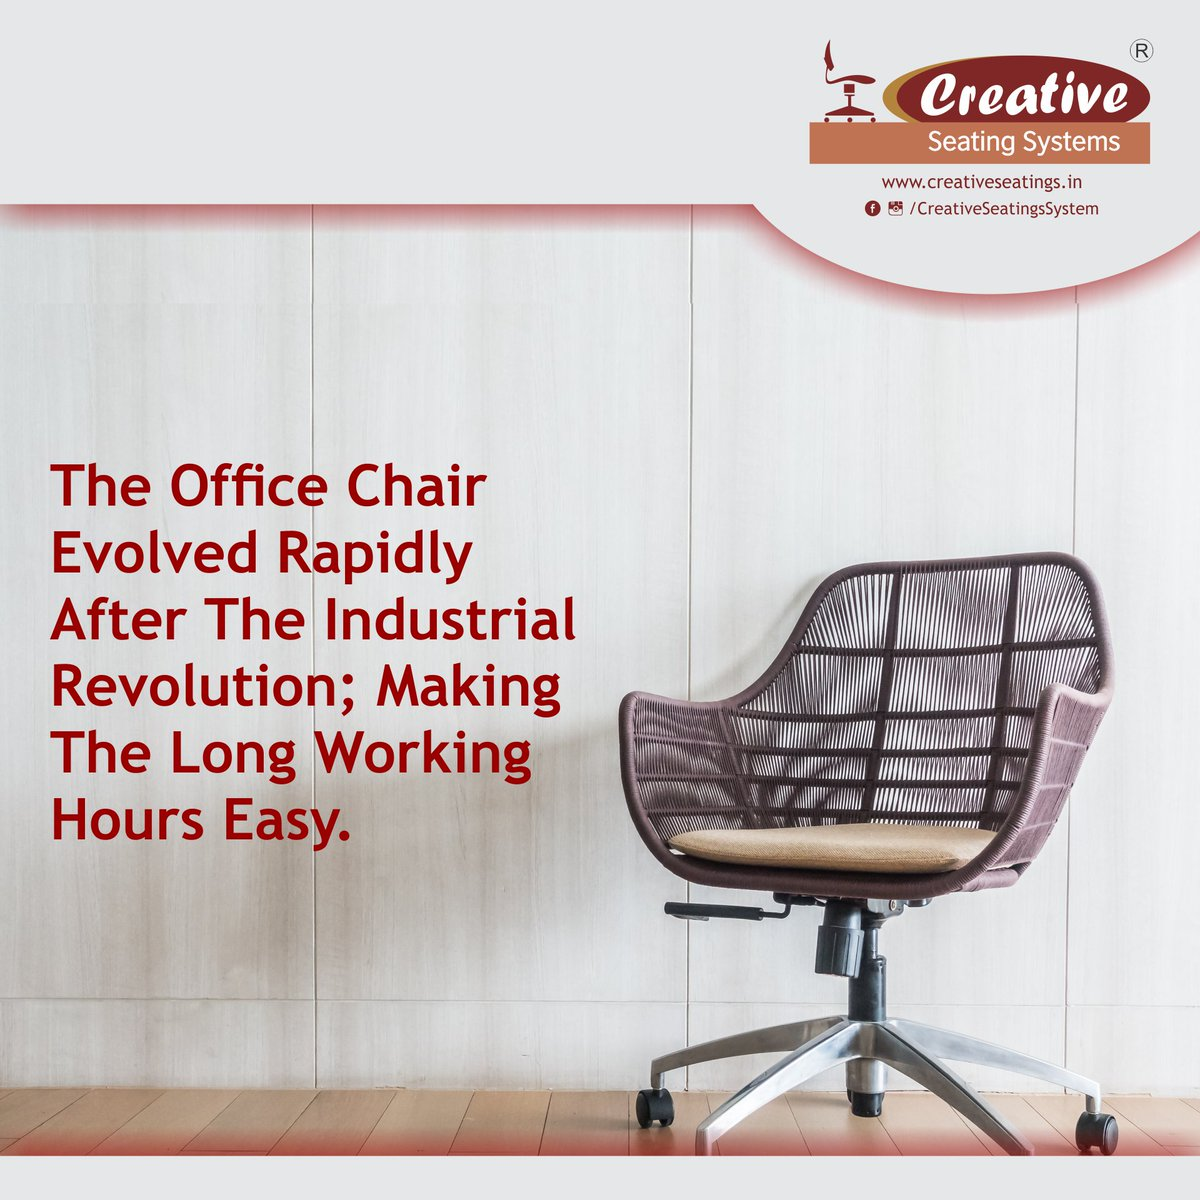 creative seating Chairs (@Creative_SSytm)  Twitter